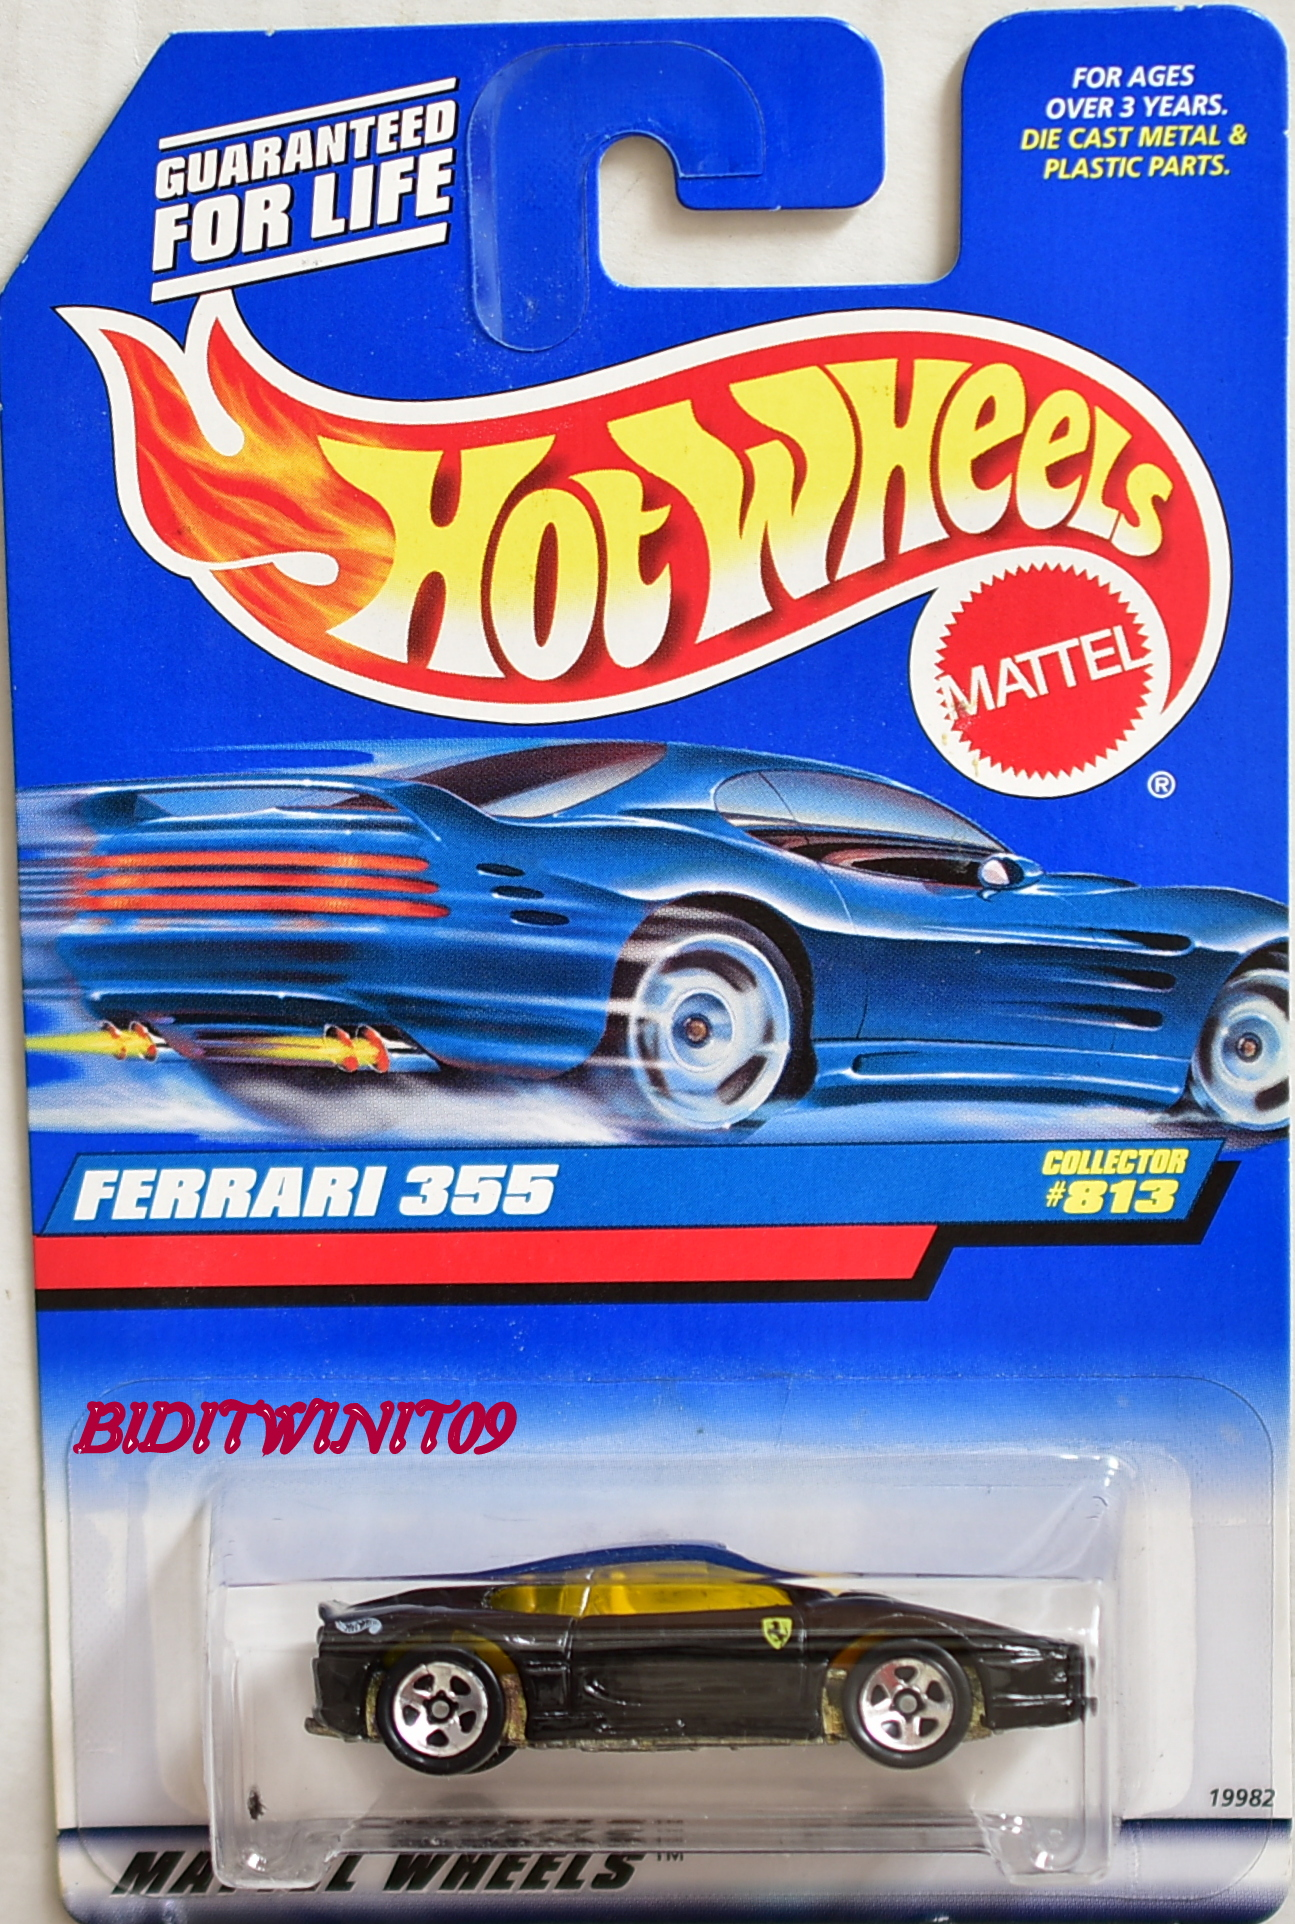 HOT WHEELS 1998 FERRARI 355 #813 BLACK